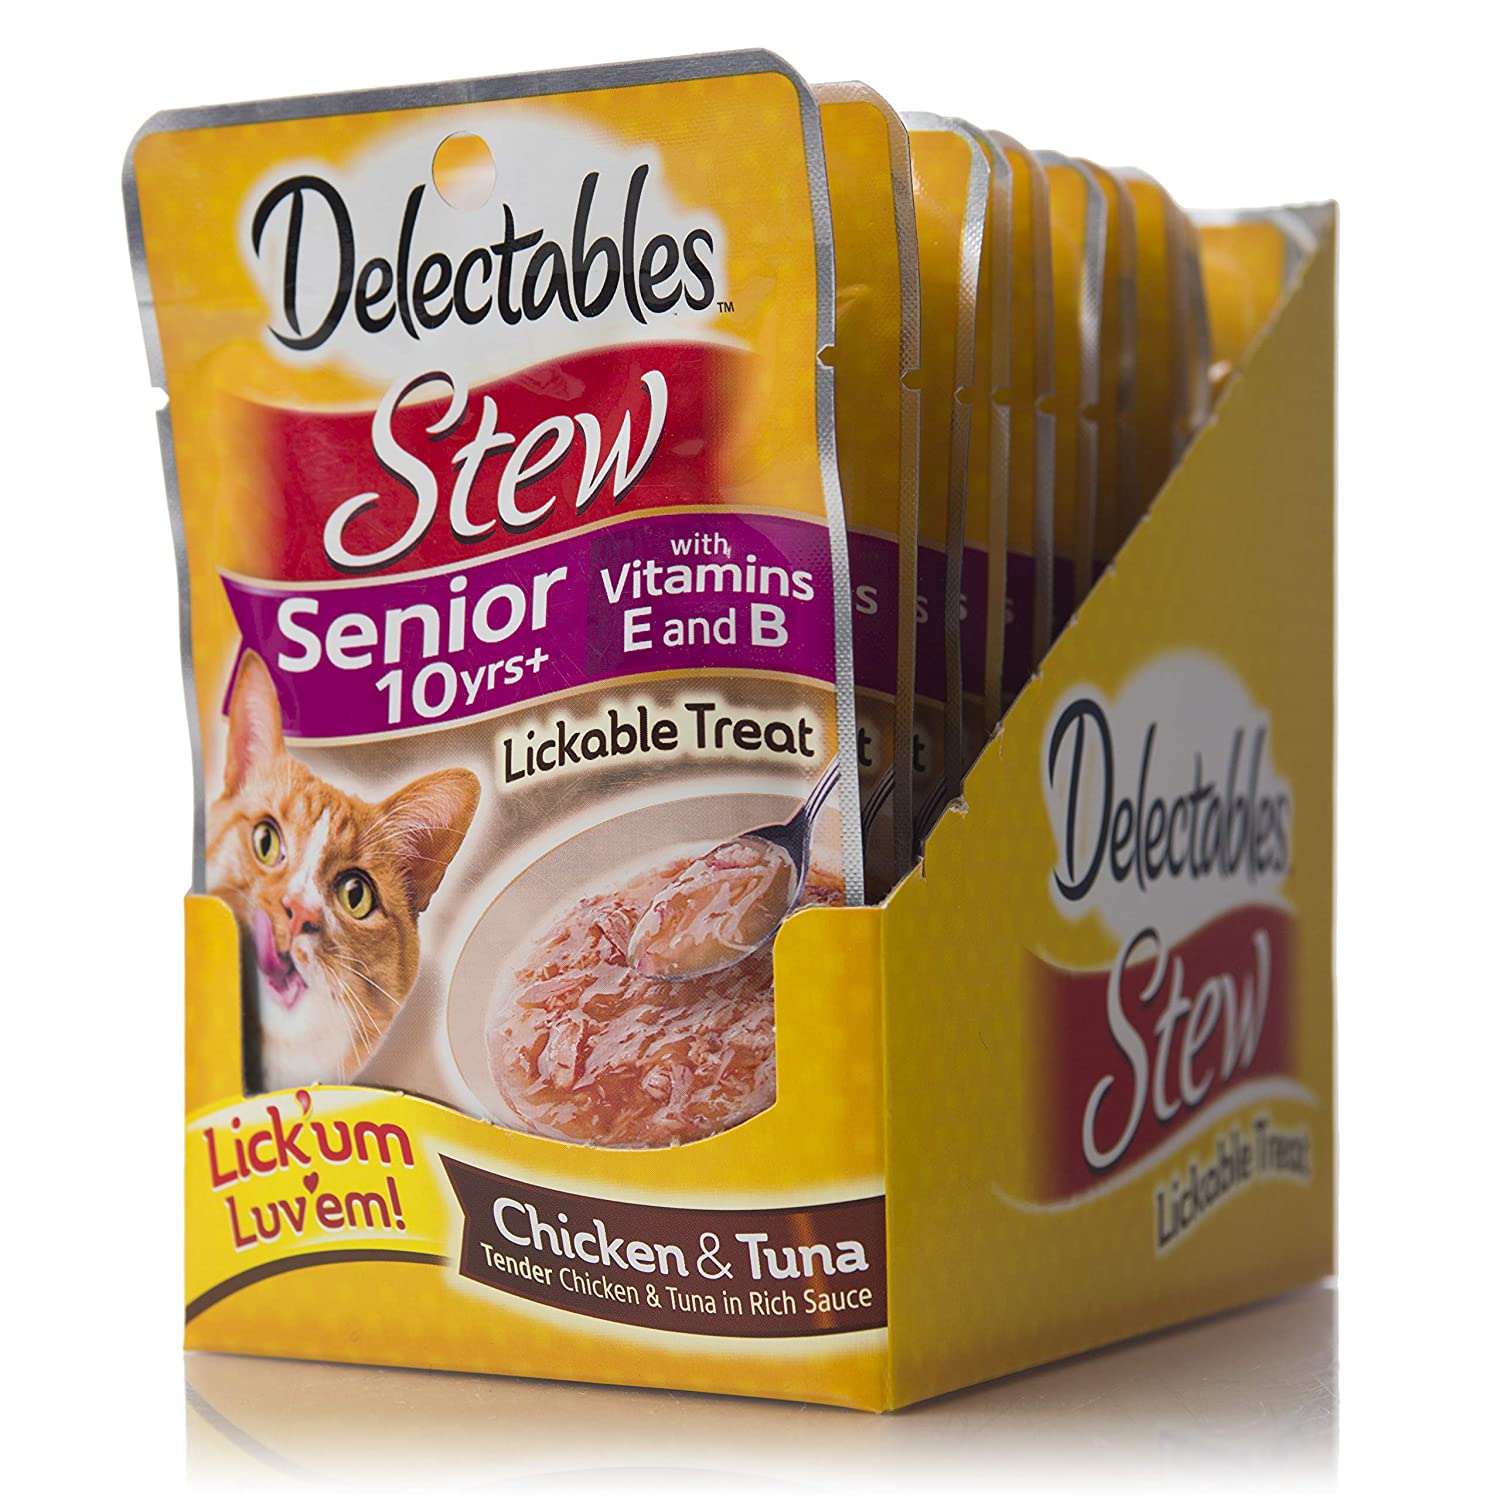 Delectables Stew Senior 10 Years + Lickable Wet Cat Treats - Chicken & Tuna